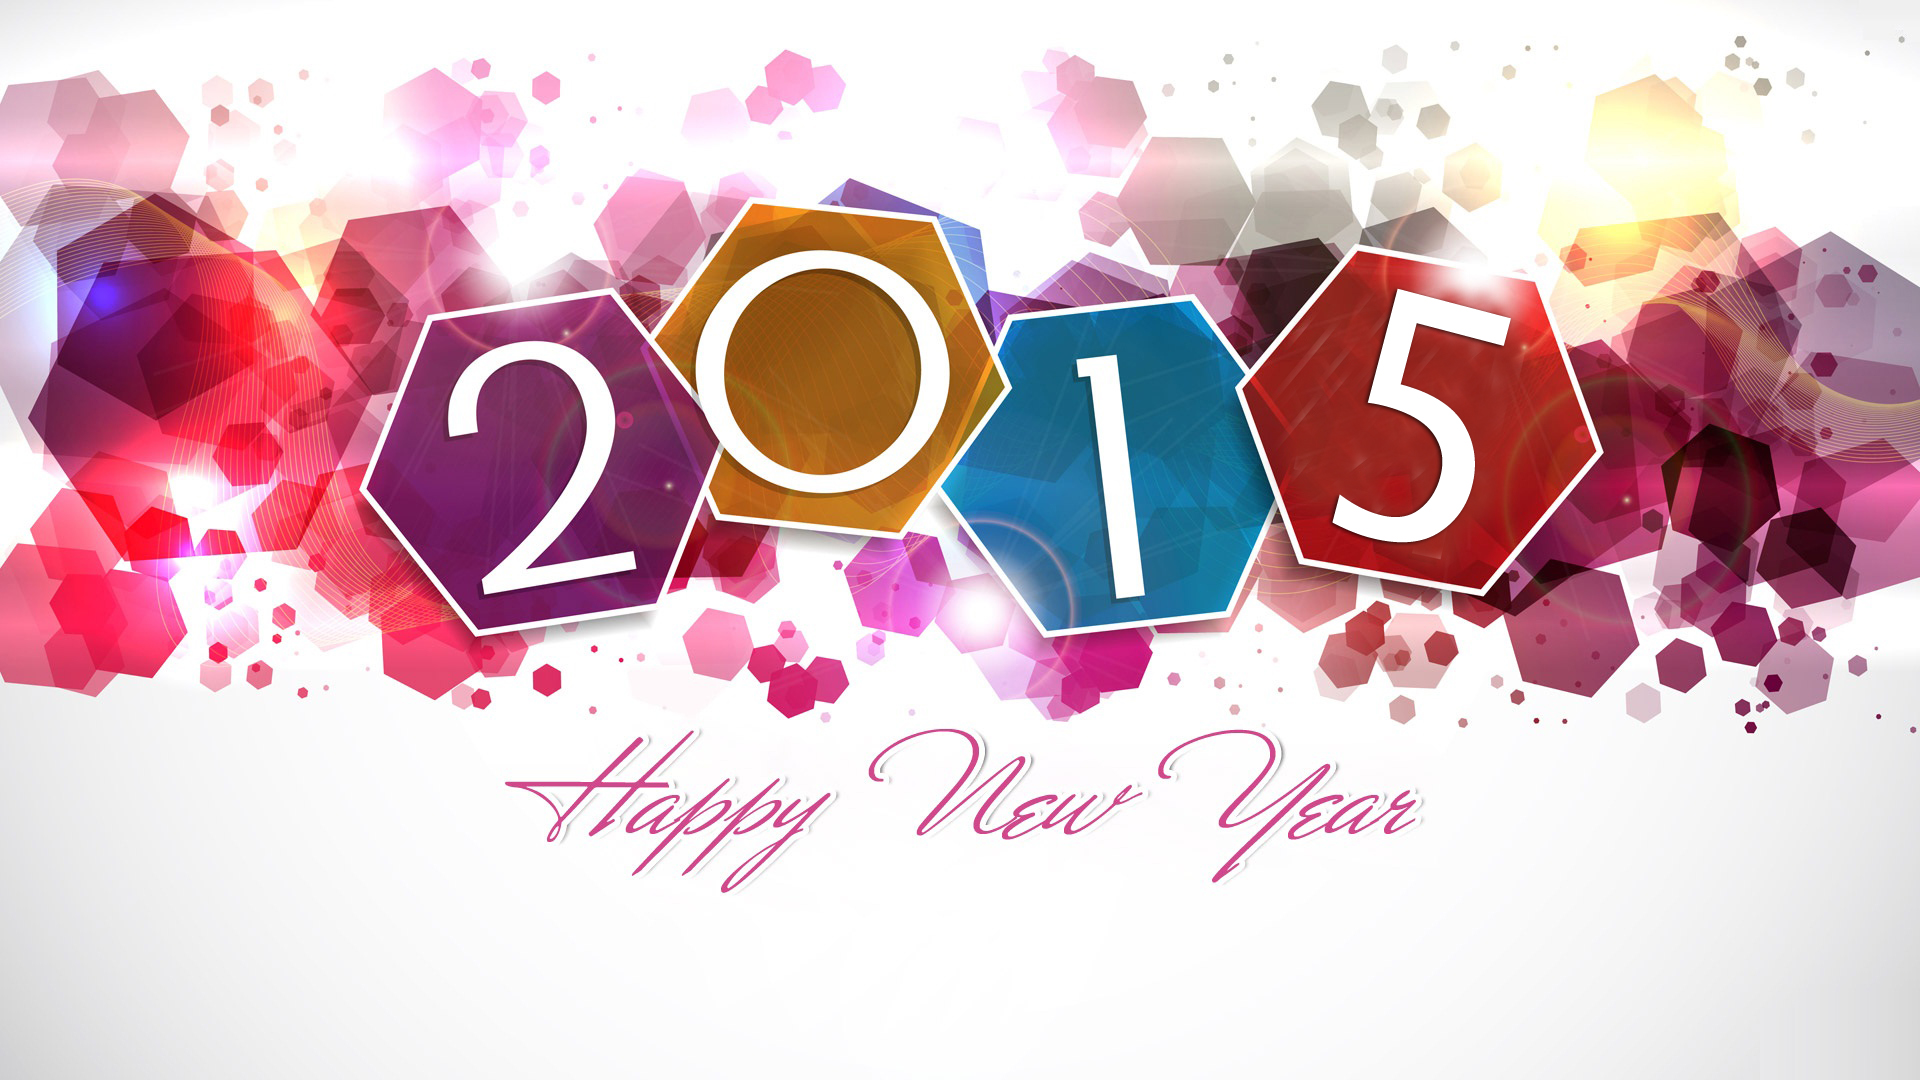 New Year 2015 Computer Background wallpaper   Webjazba Science 1920x1080